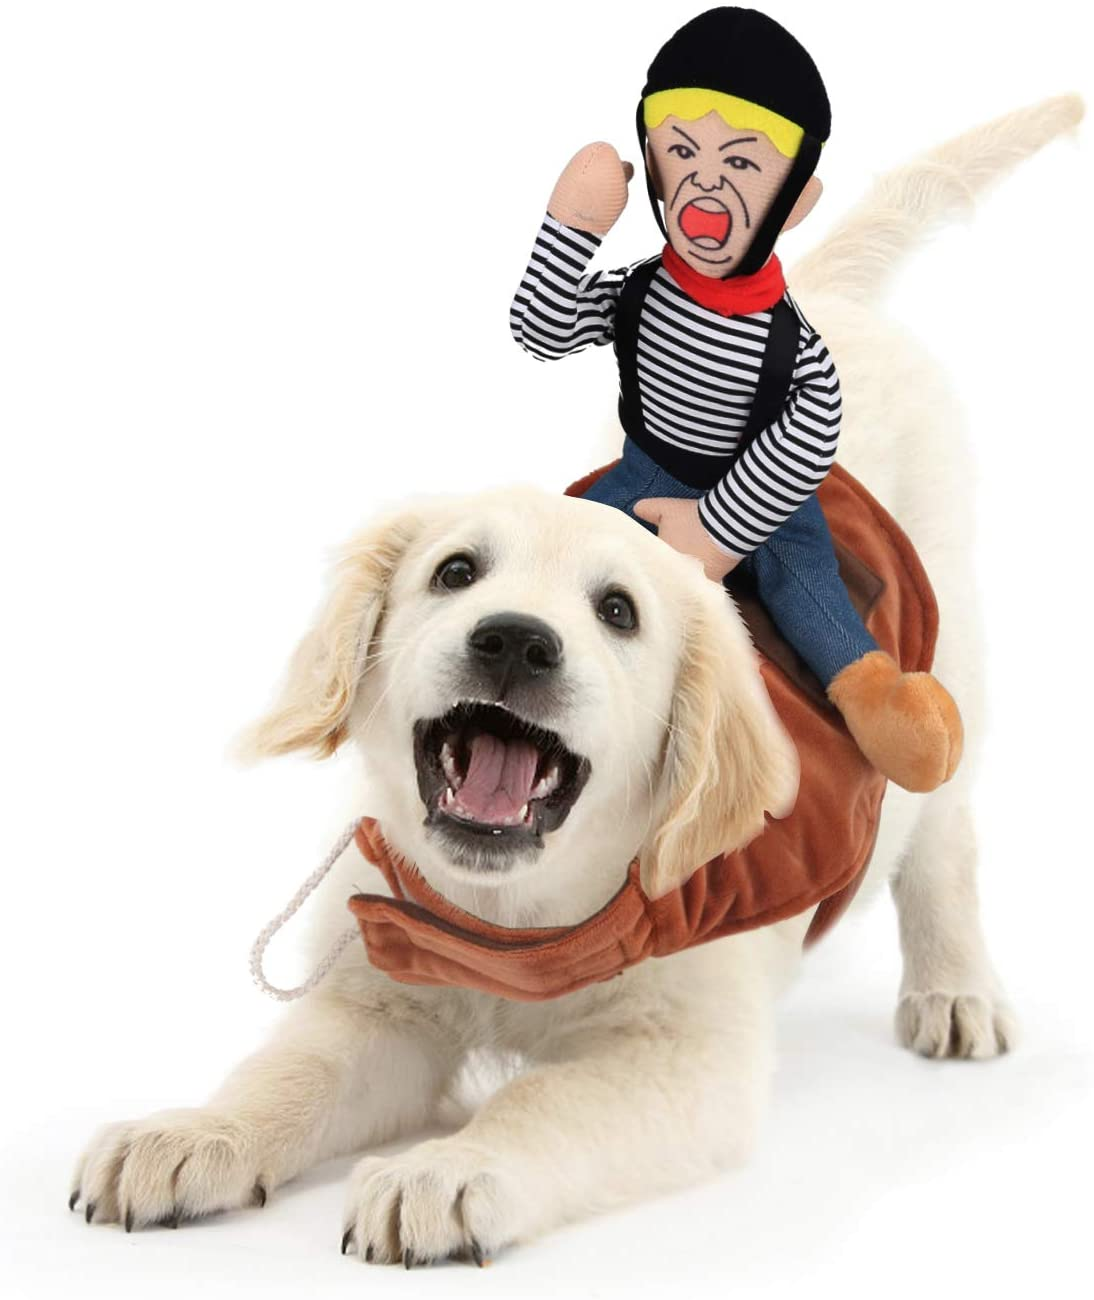 Idepet Dog Halloween Costumes, Halloween Costumes for Dogs, Dog Costumes for Small Medium Dogs Funny Halloween Costumes Cowboy Rider Dogs Clothes with Outfit Suit Knight Style